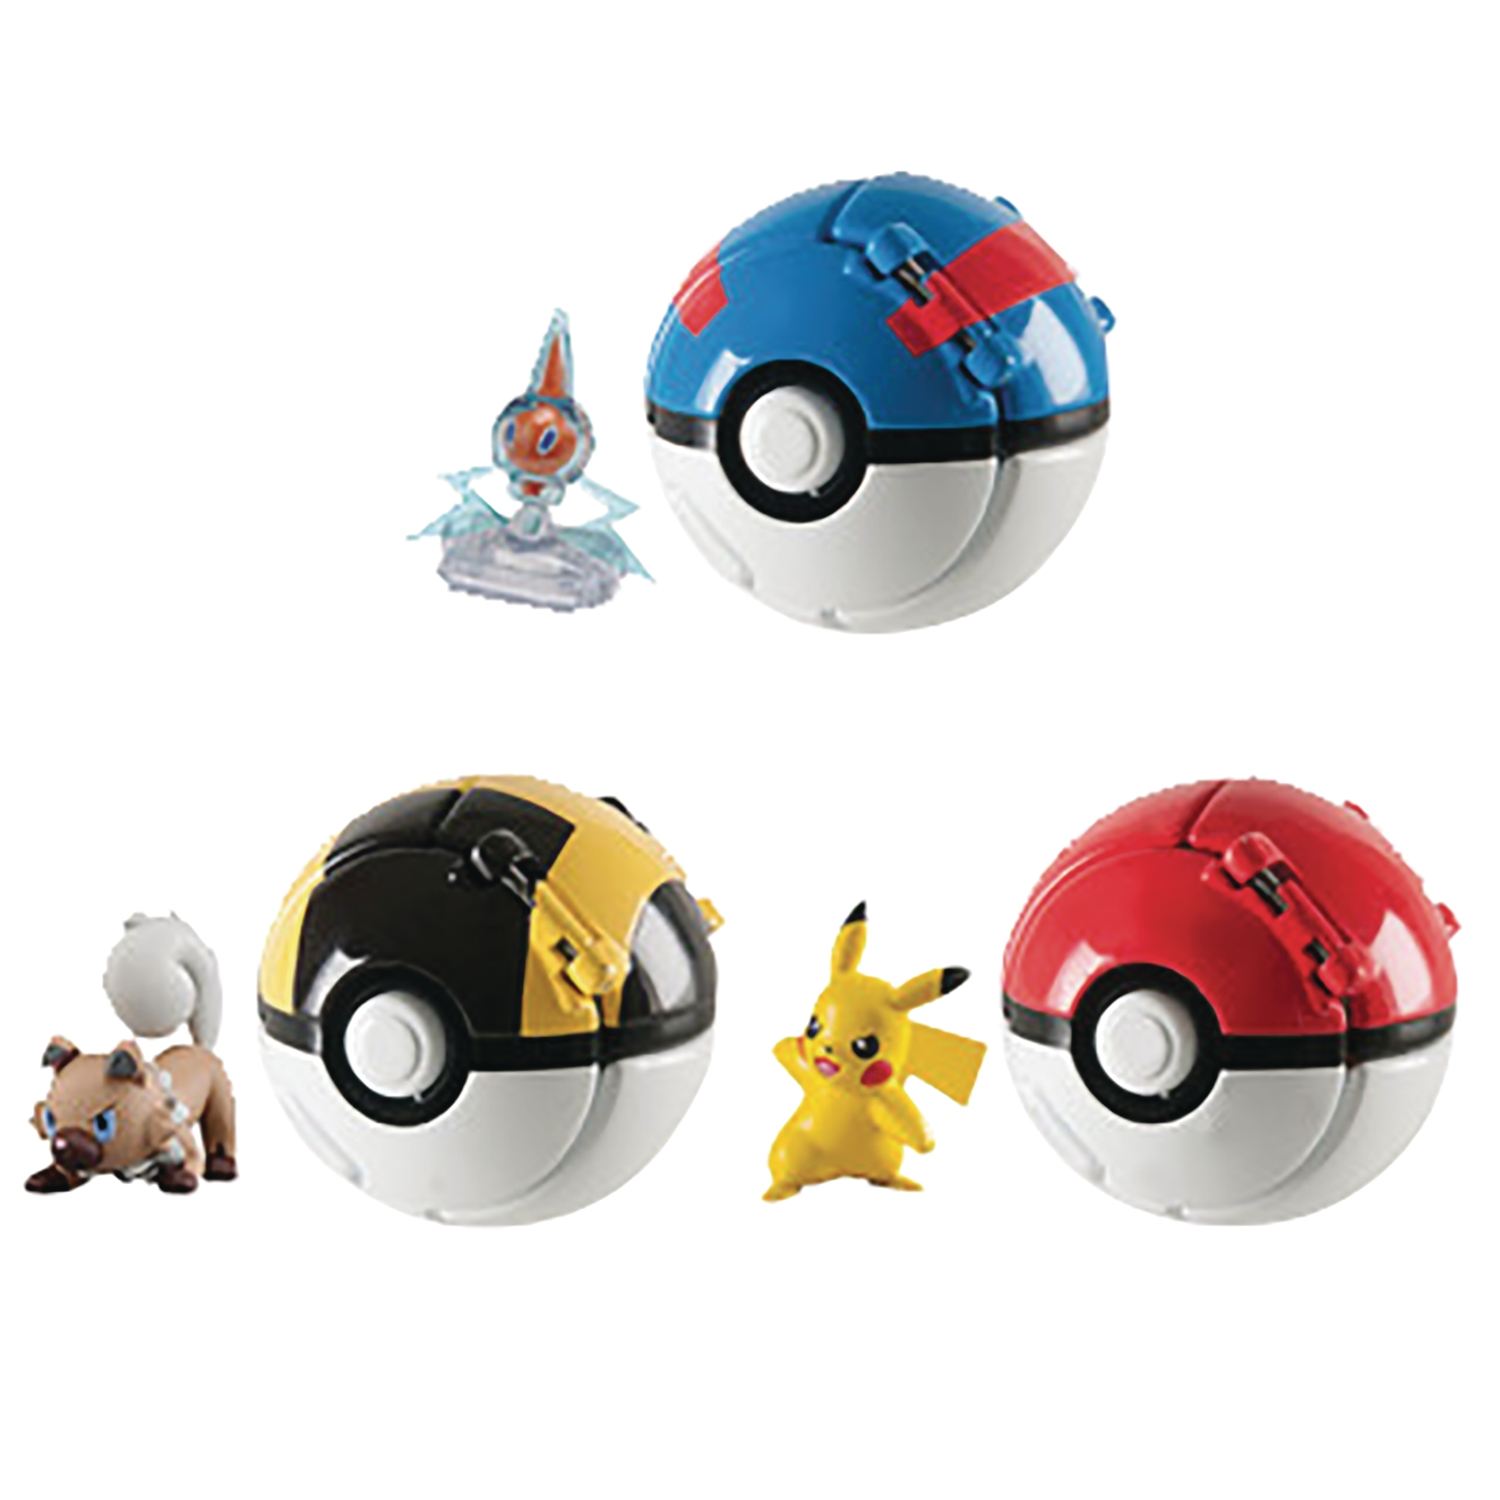 POKEMON -Throw n Pop Pokémon